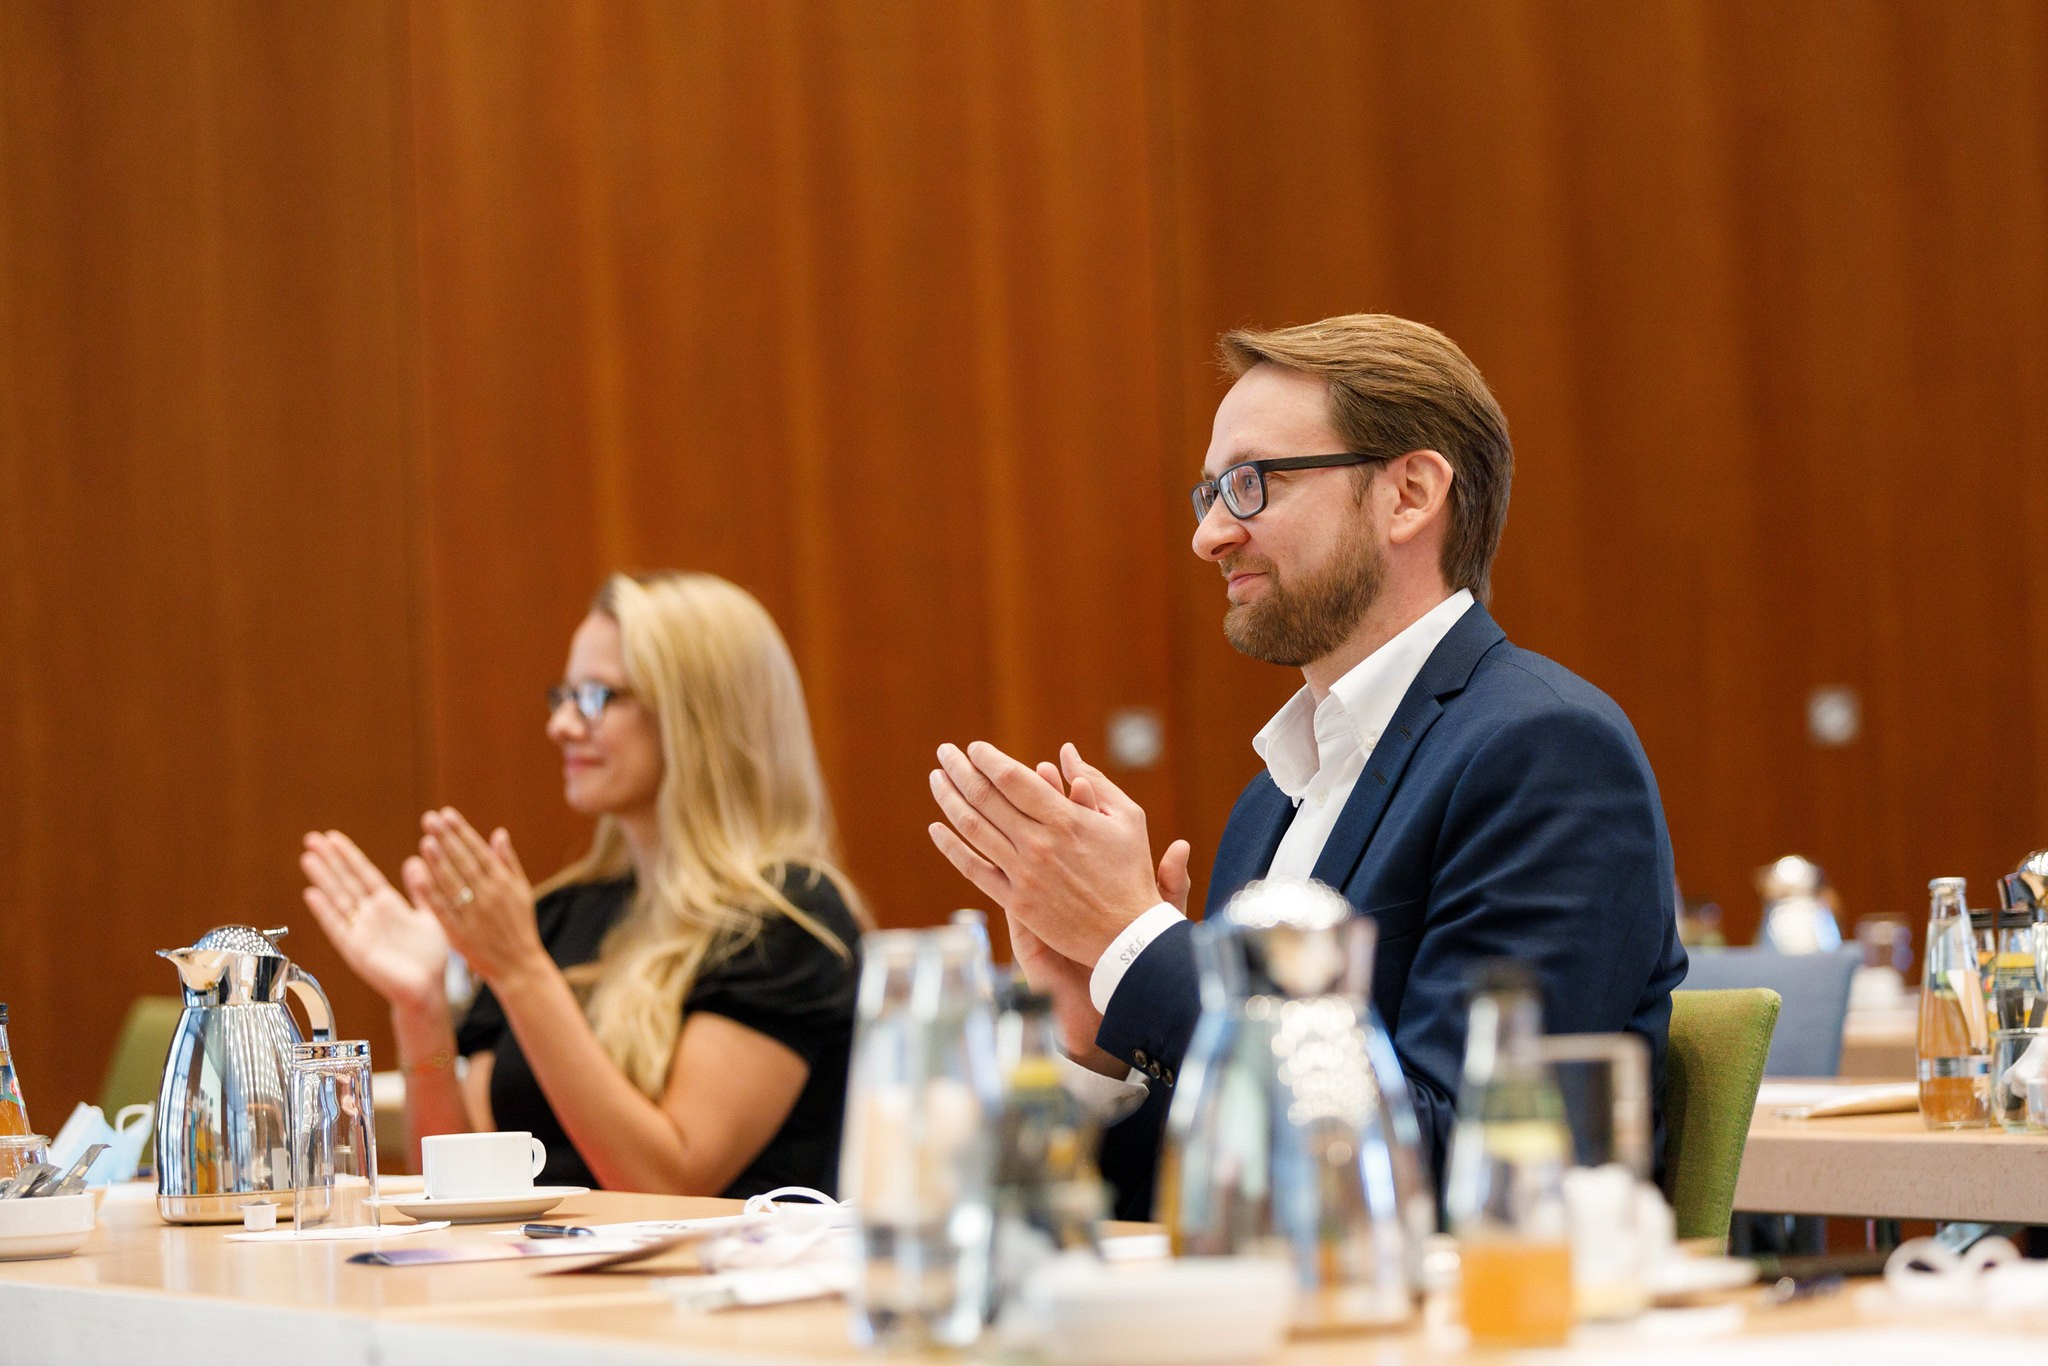 What to expect from DAY 1 of AsiaBerlin Summit 2021 – 4 October?